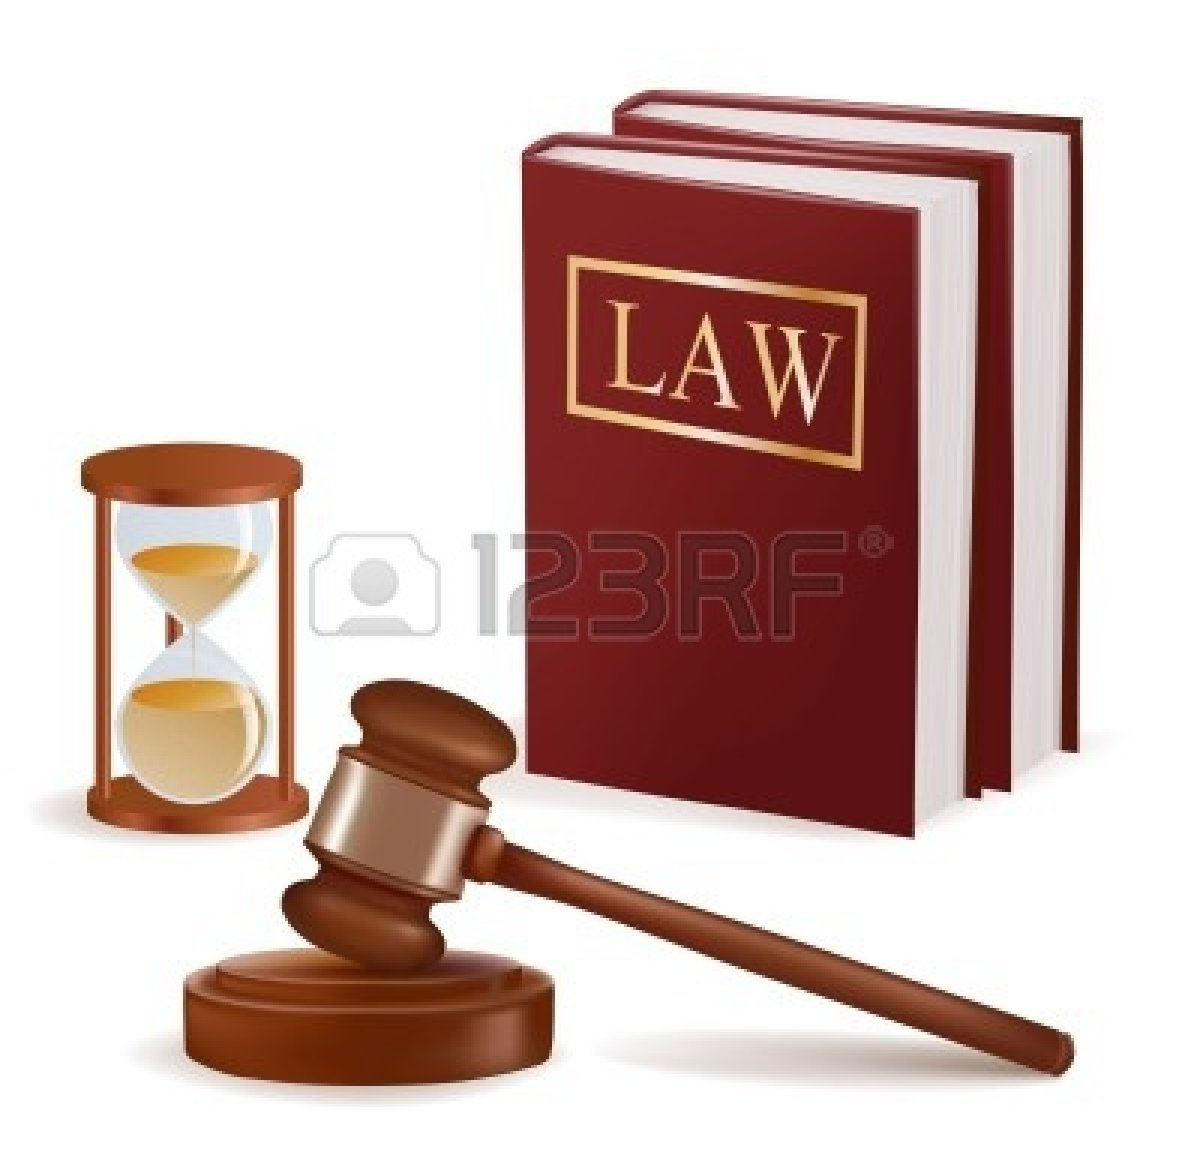 Court of justice clipart 20 free Cliparts | Download ...